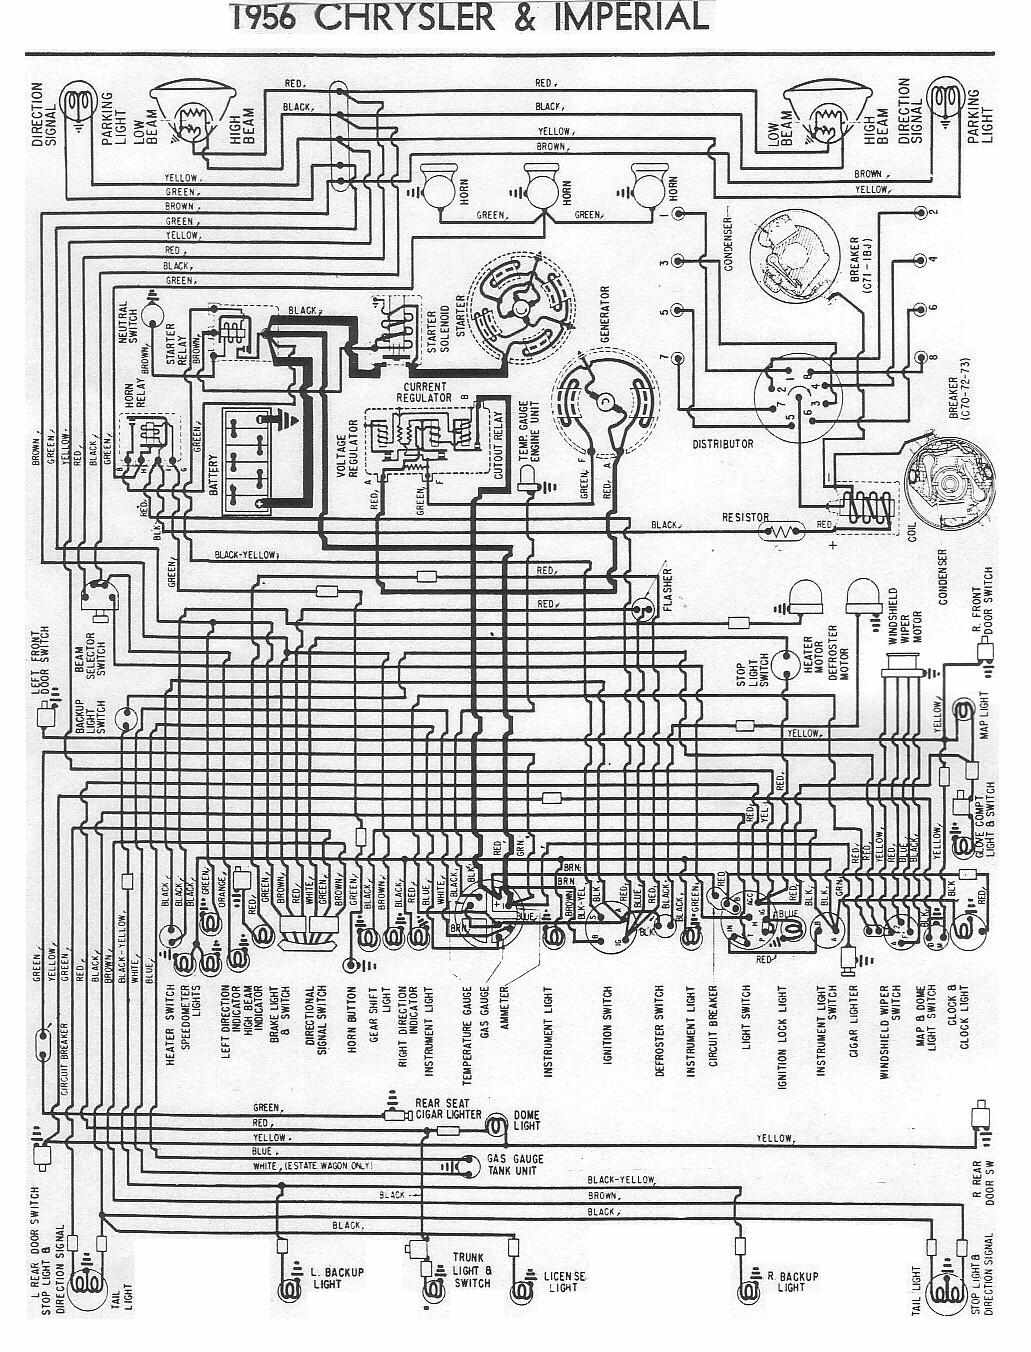 1955 Chrysler Imperial Wiring Diagram Trusted Harness 1954 Mopar Diagrams Library Rh Svpack Co 1953